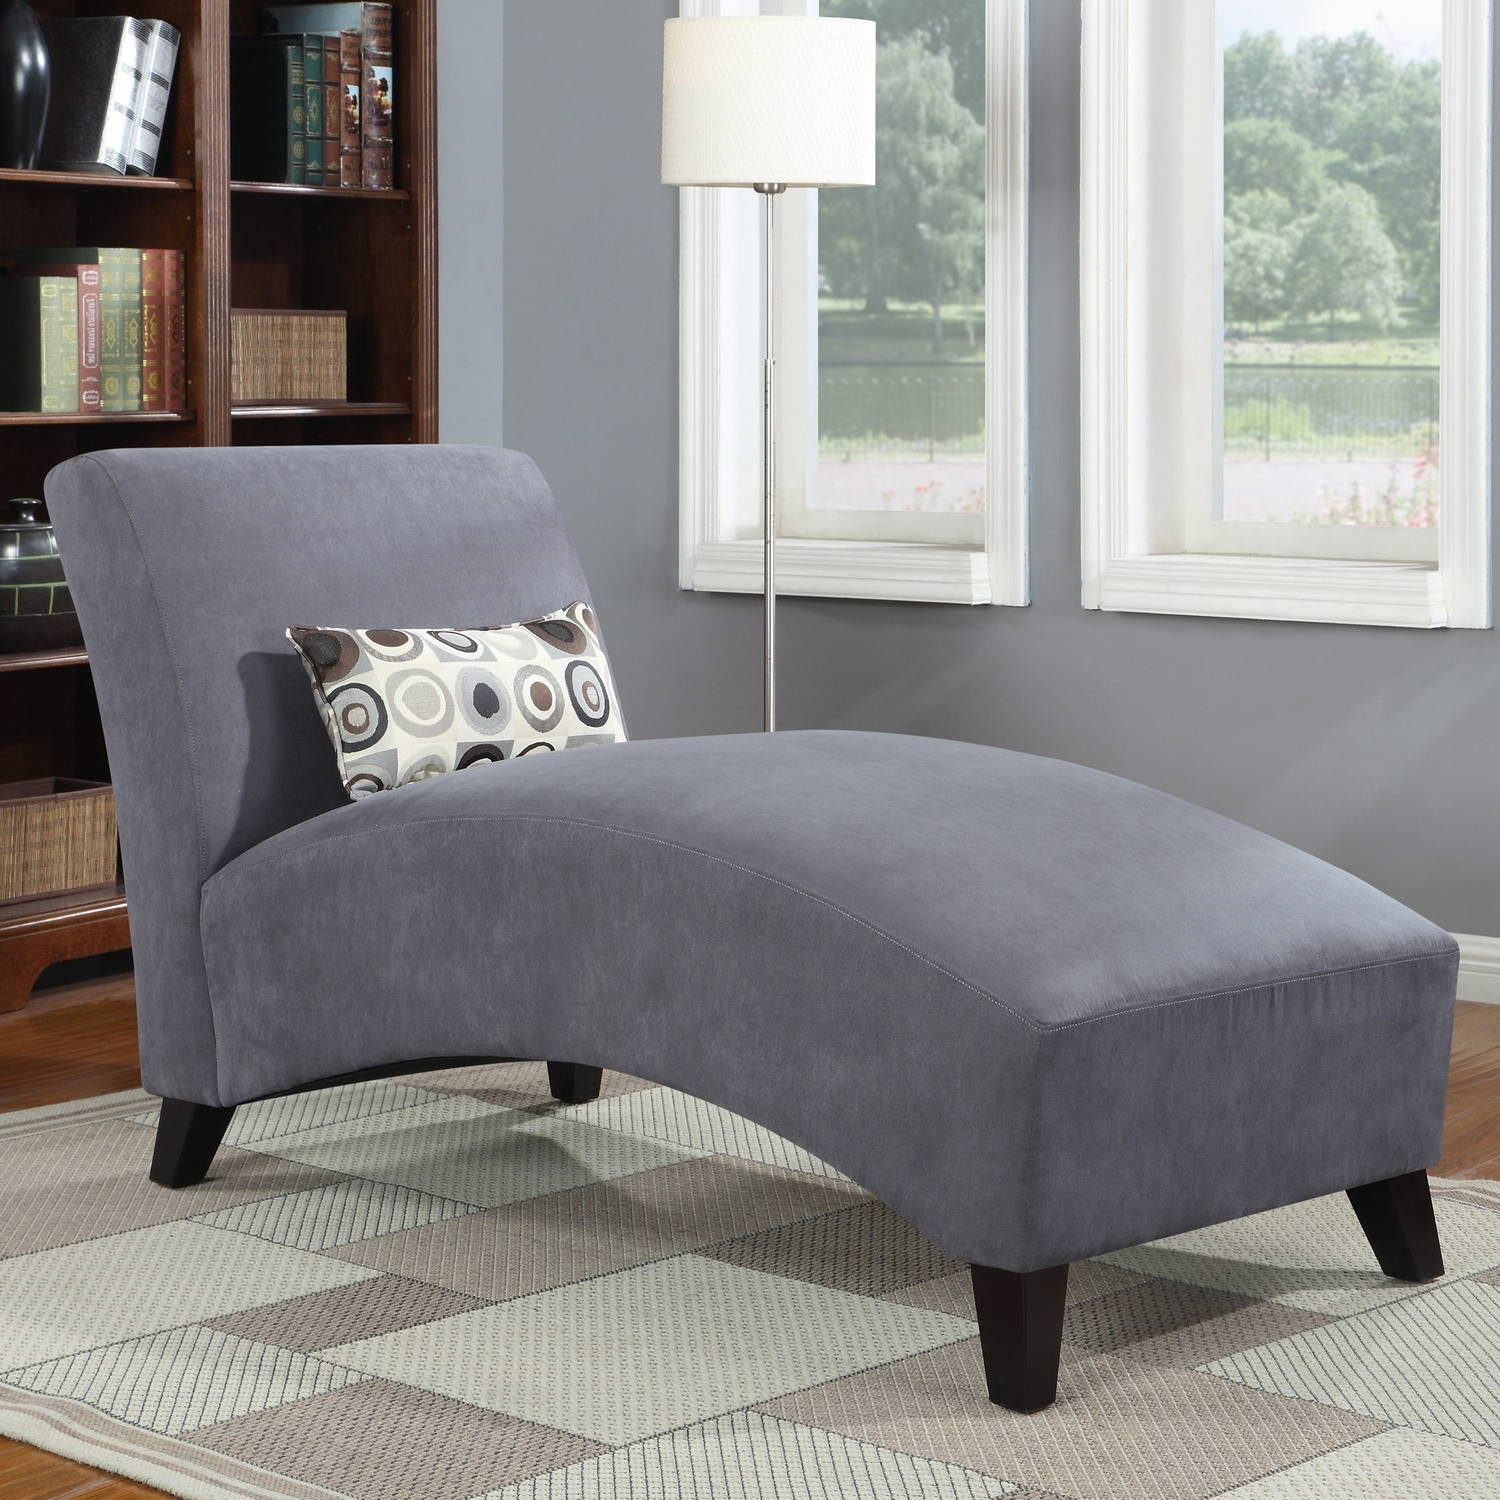 Convertible Chair : Small Chaise Lounge Chair Tufted Chaise Lounge For Most Recent Small Chaises (View 5 of 15)